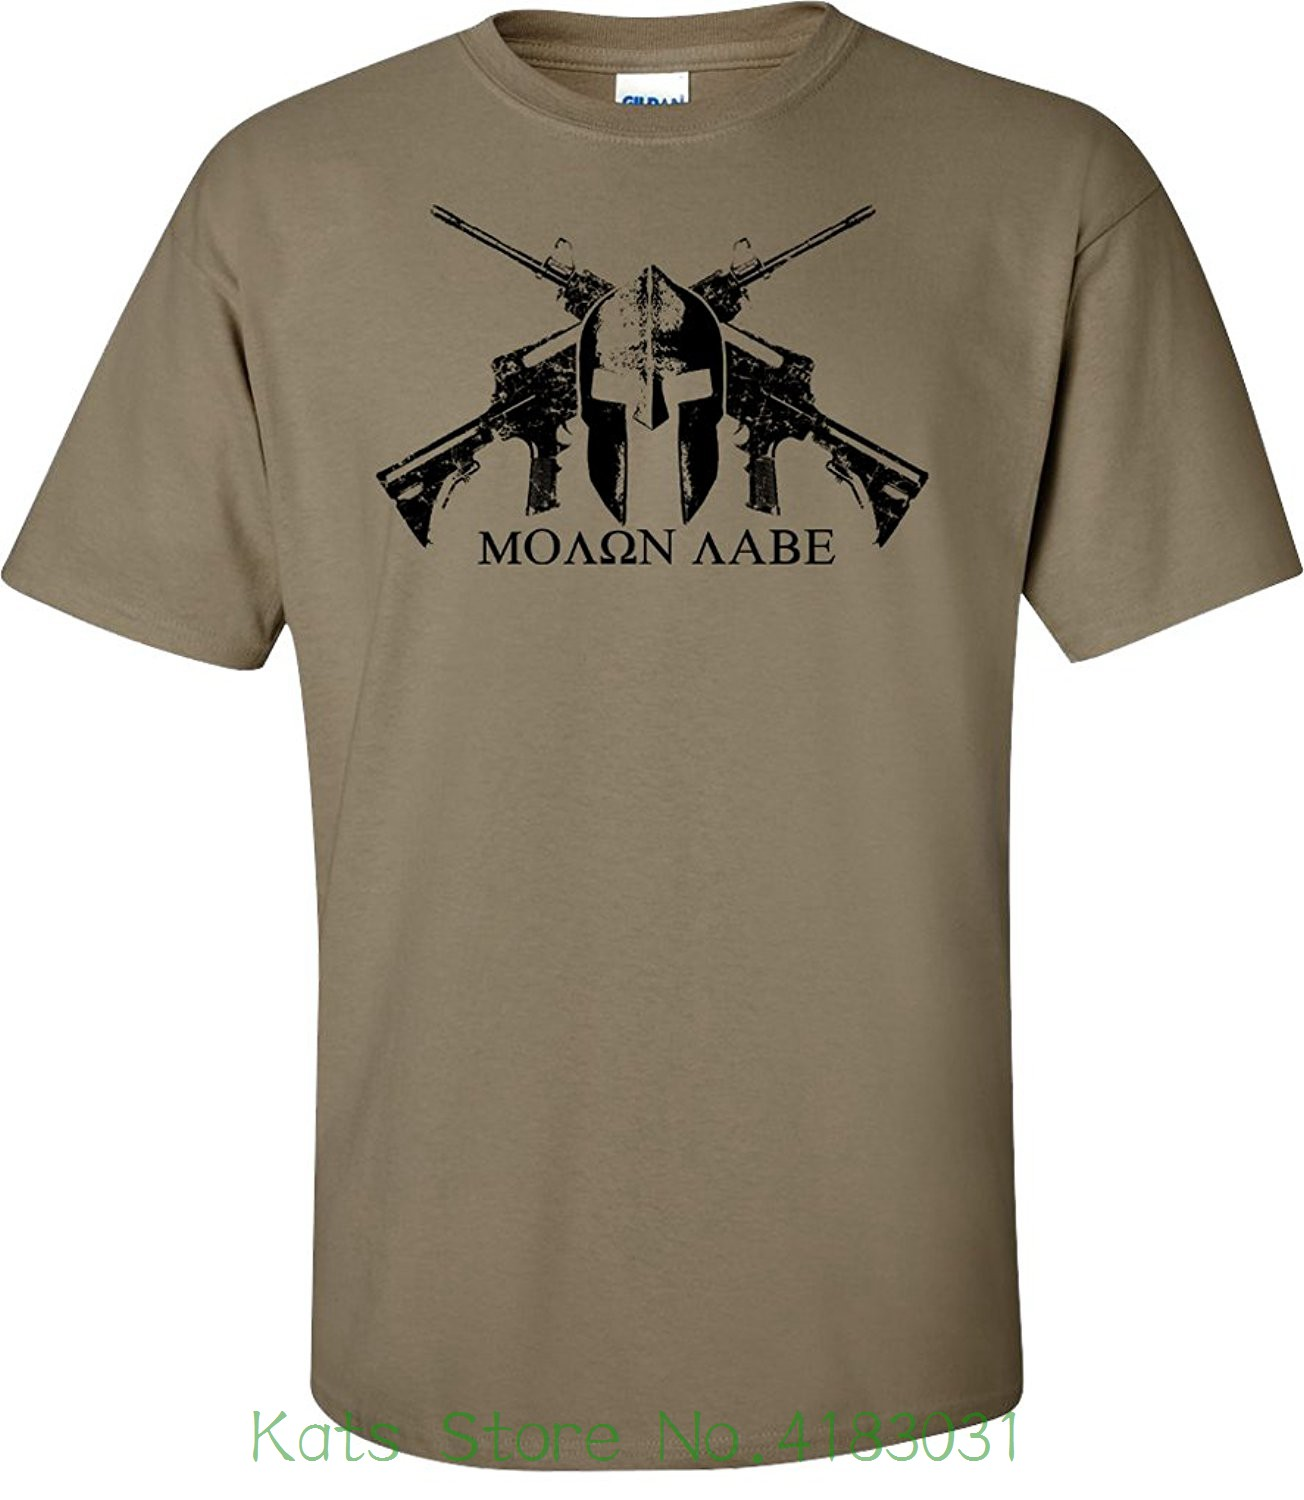 Coyote Helmet Molon Labe T-shirt O-neck Fashion Casual High Quality Print T Shirt